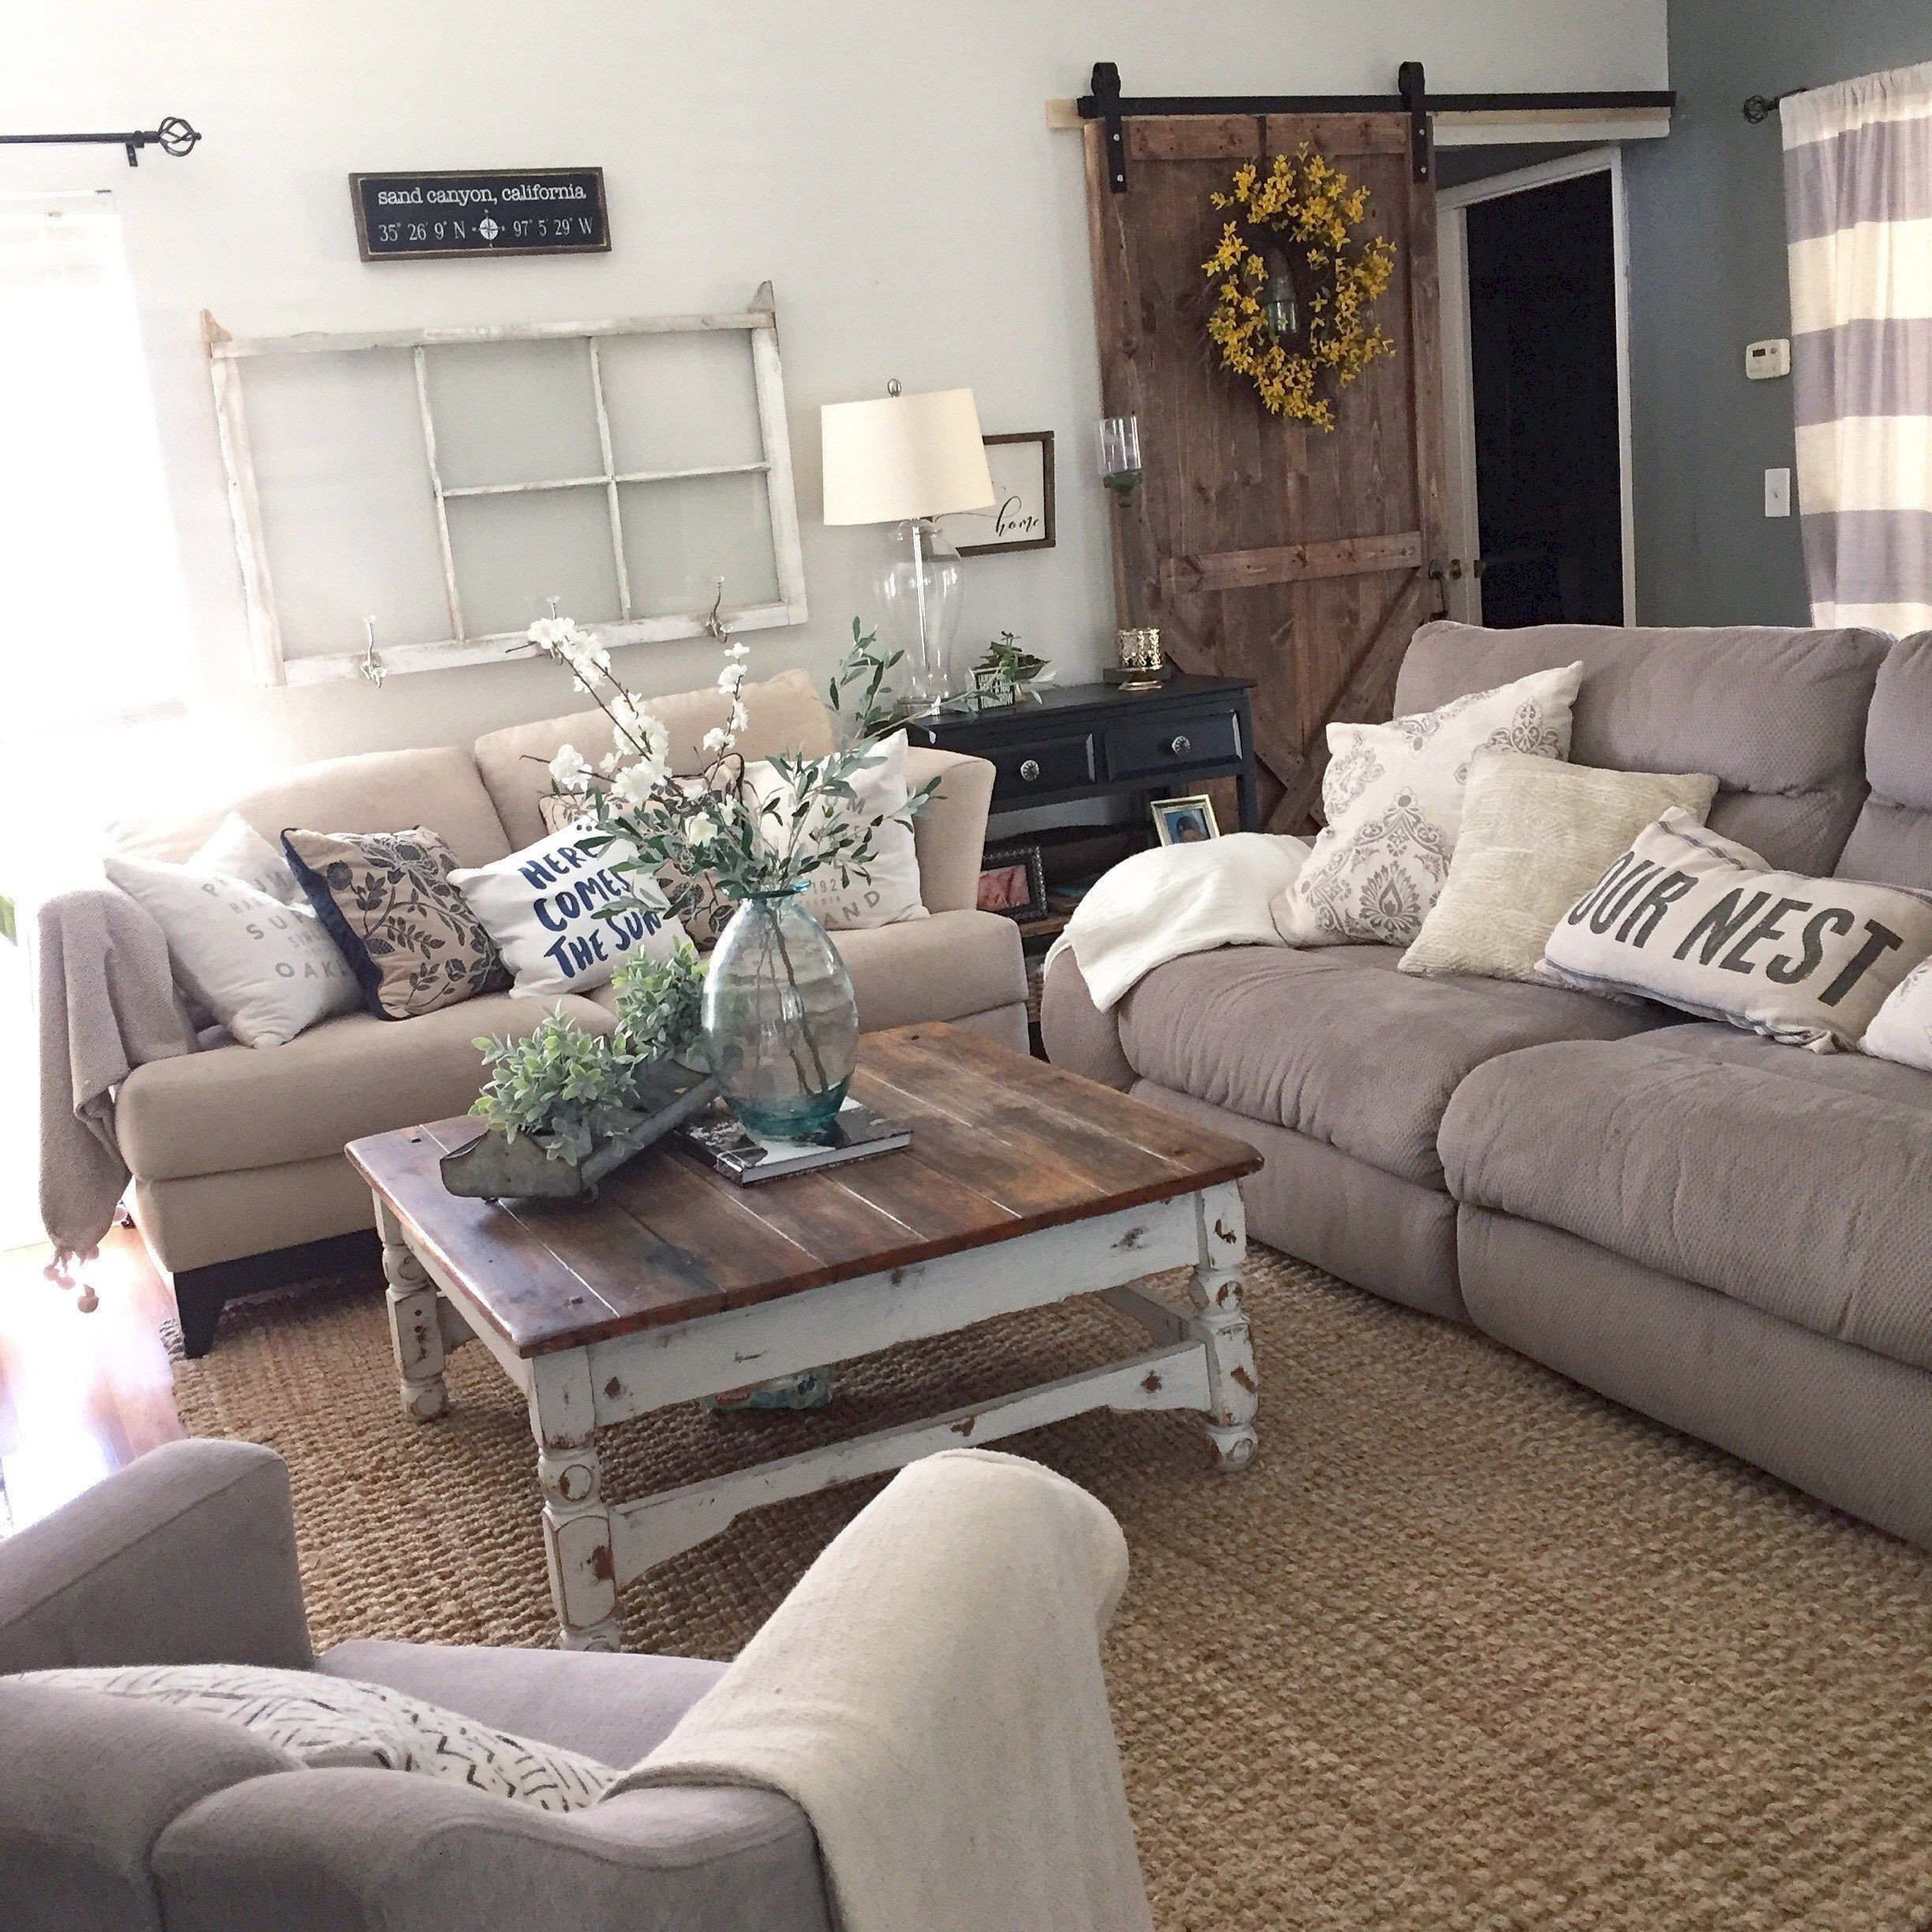 Modern Chic Living Room Decorating Ideas top 11 Incredible Cozy and Rustic Chic Living Room for